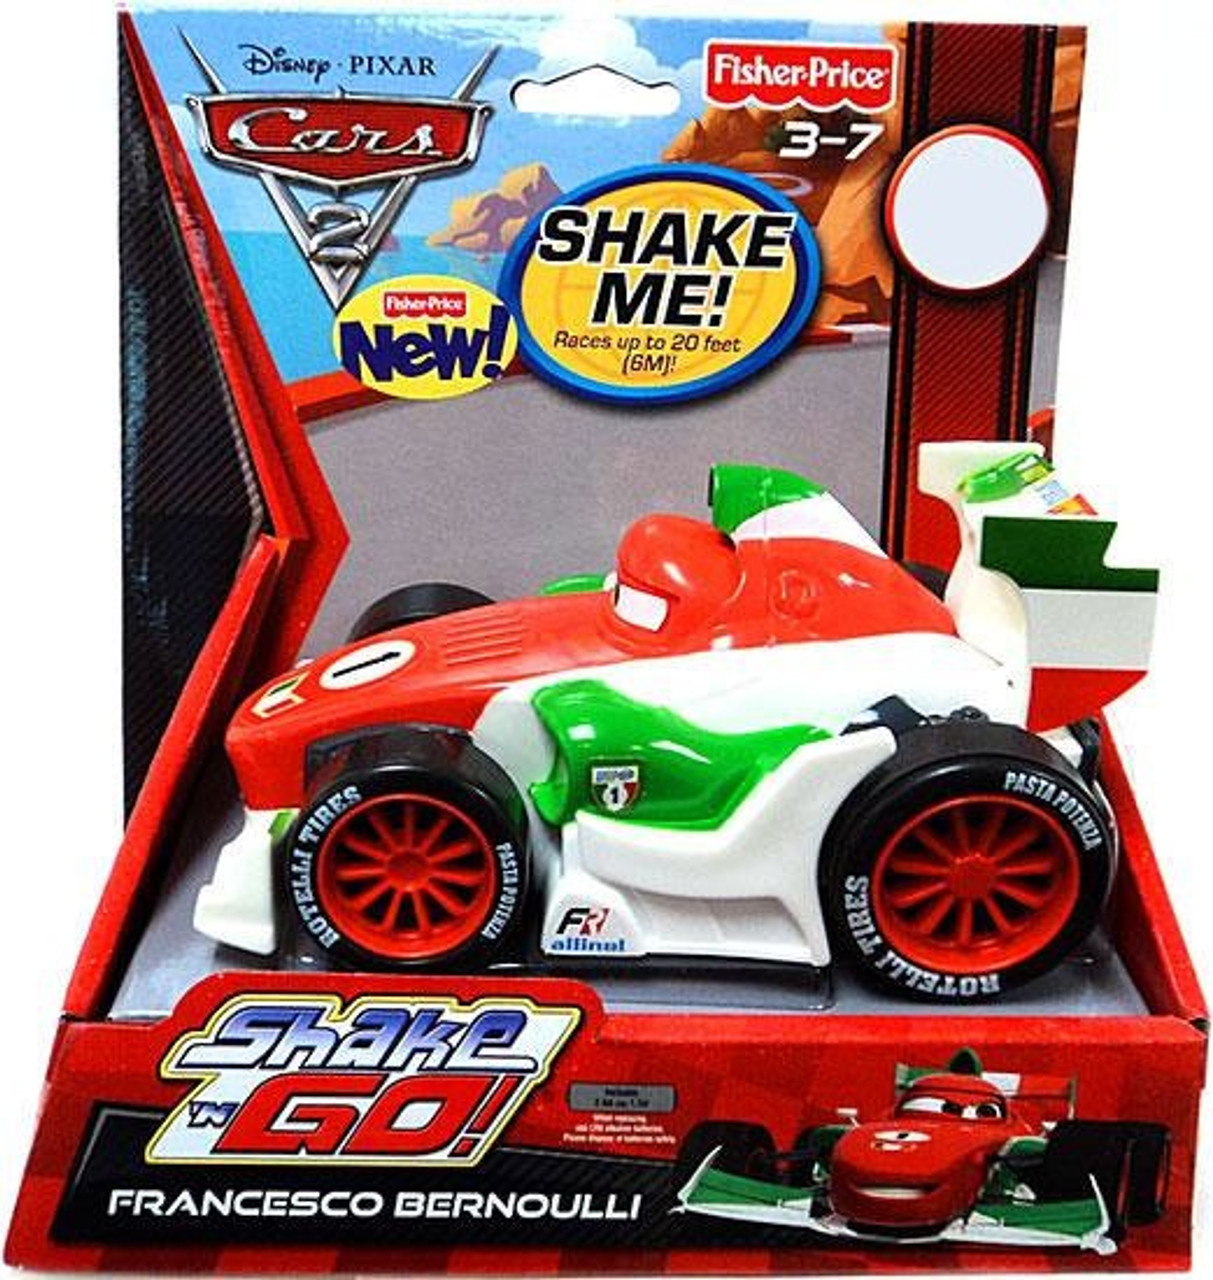 Fisher Price Disney Pixar Cars Cars 2 Shake N Go Francesco Bernoulli  Exclusive Shake N Go Car - ToyWiz 09c4bcf8b4b4